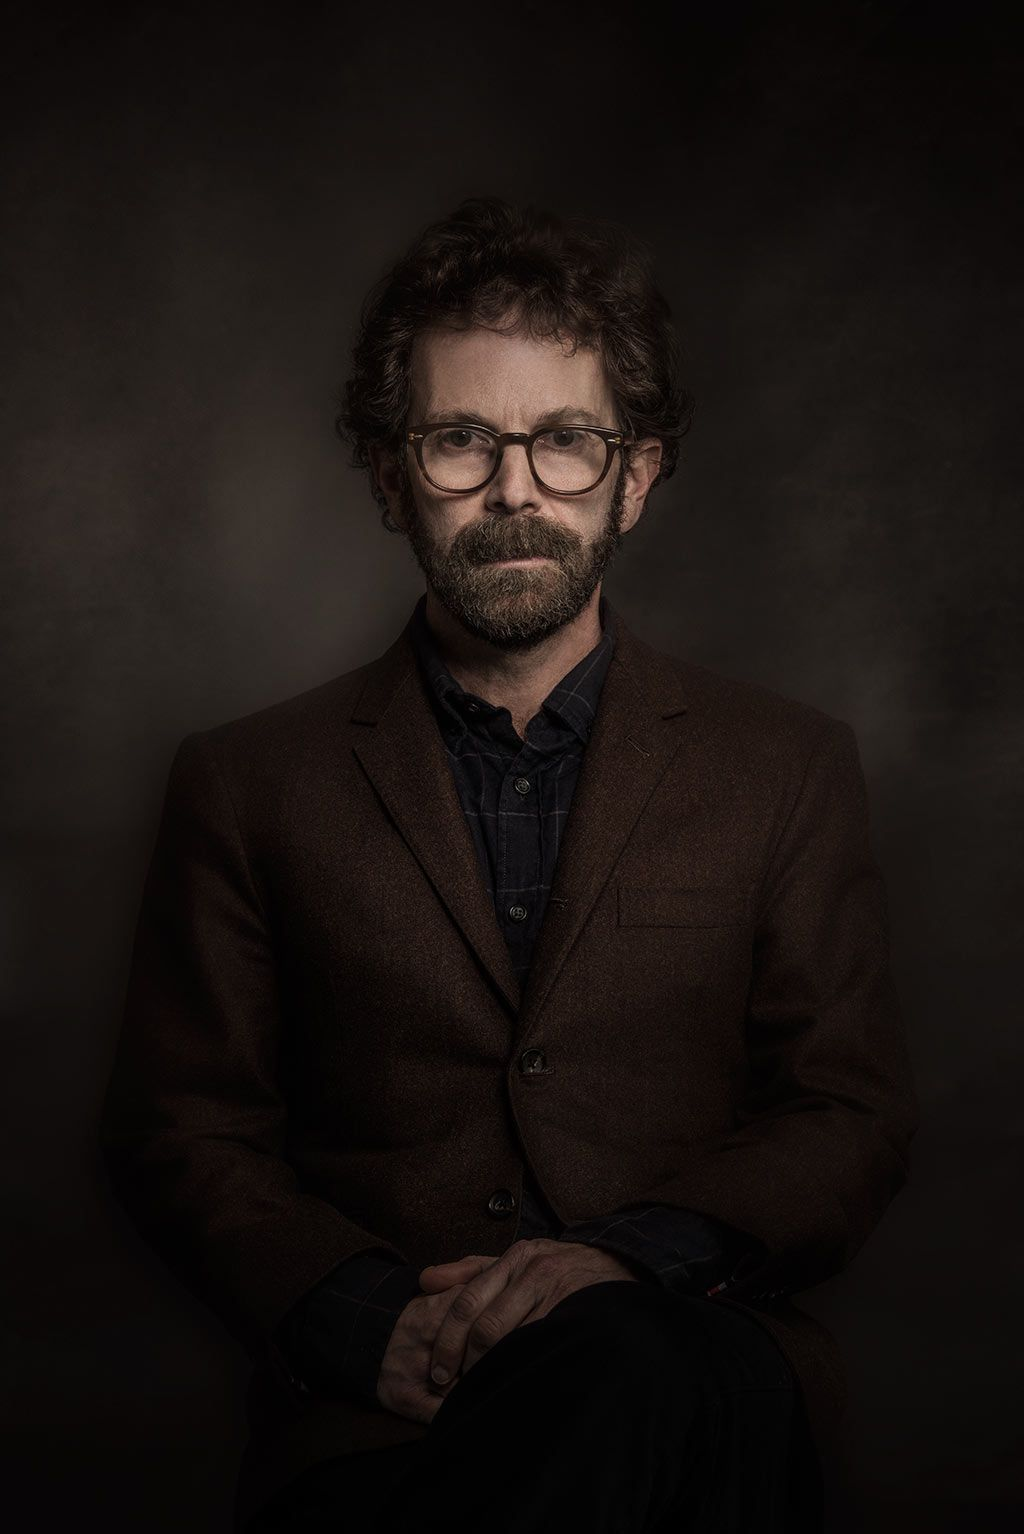 charlie kaufman twittercharlie kaufman new york, charlie kaufman anomalisa, charlie kaufman imdb, charlie kaufman twitter, charlie kaufman interview, charlie kaufman favorite movies, charlie kaufman net worth, charlie kaufman youtube, charlie kaufman stephen colbert, charlie kaufman website, charlie kaufman religion, charlie kaufman about writing, charlie kaufman scripts, charlie kaufman favorite books